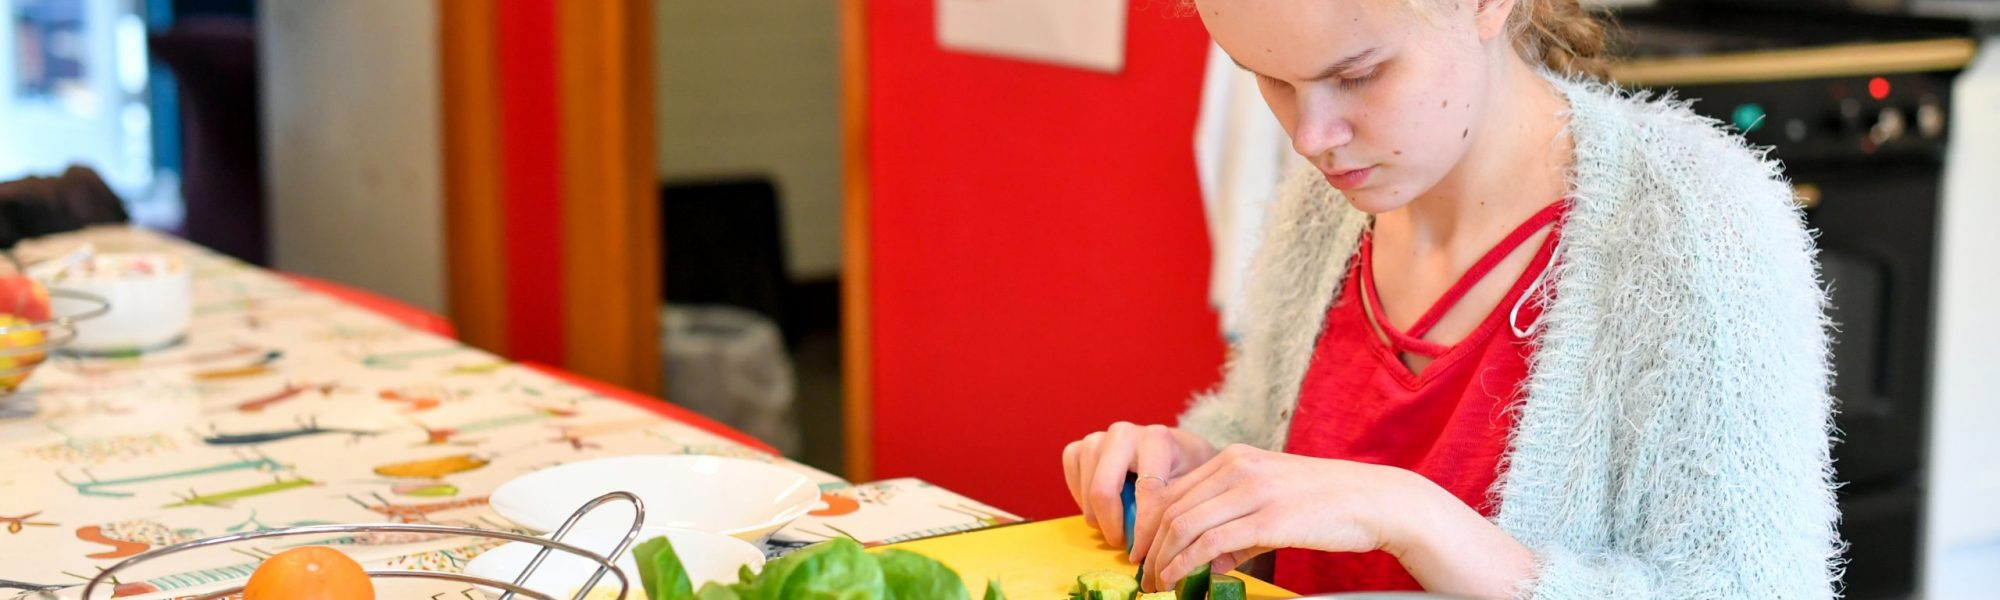 Student chopping vegetables